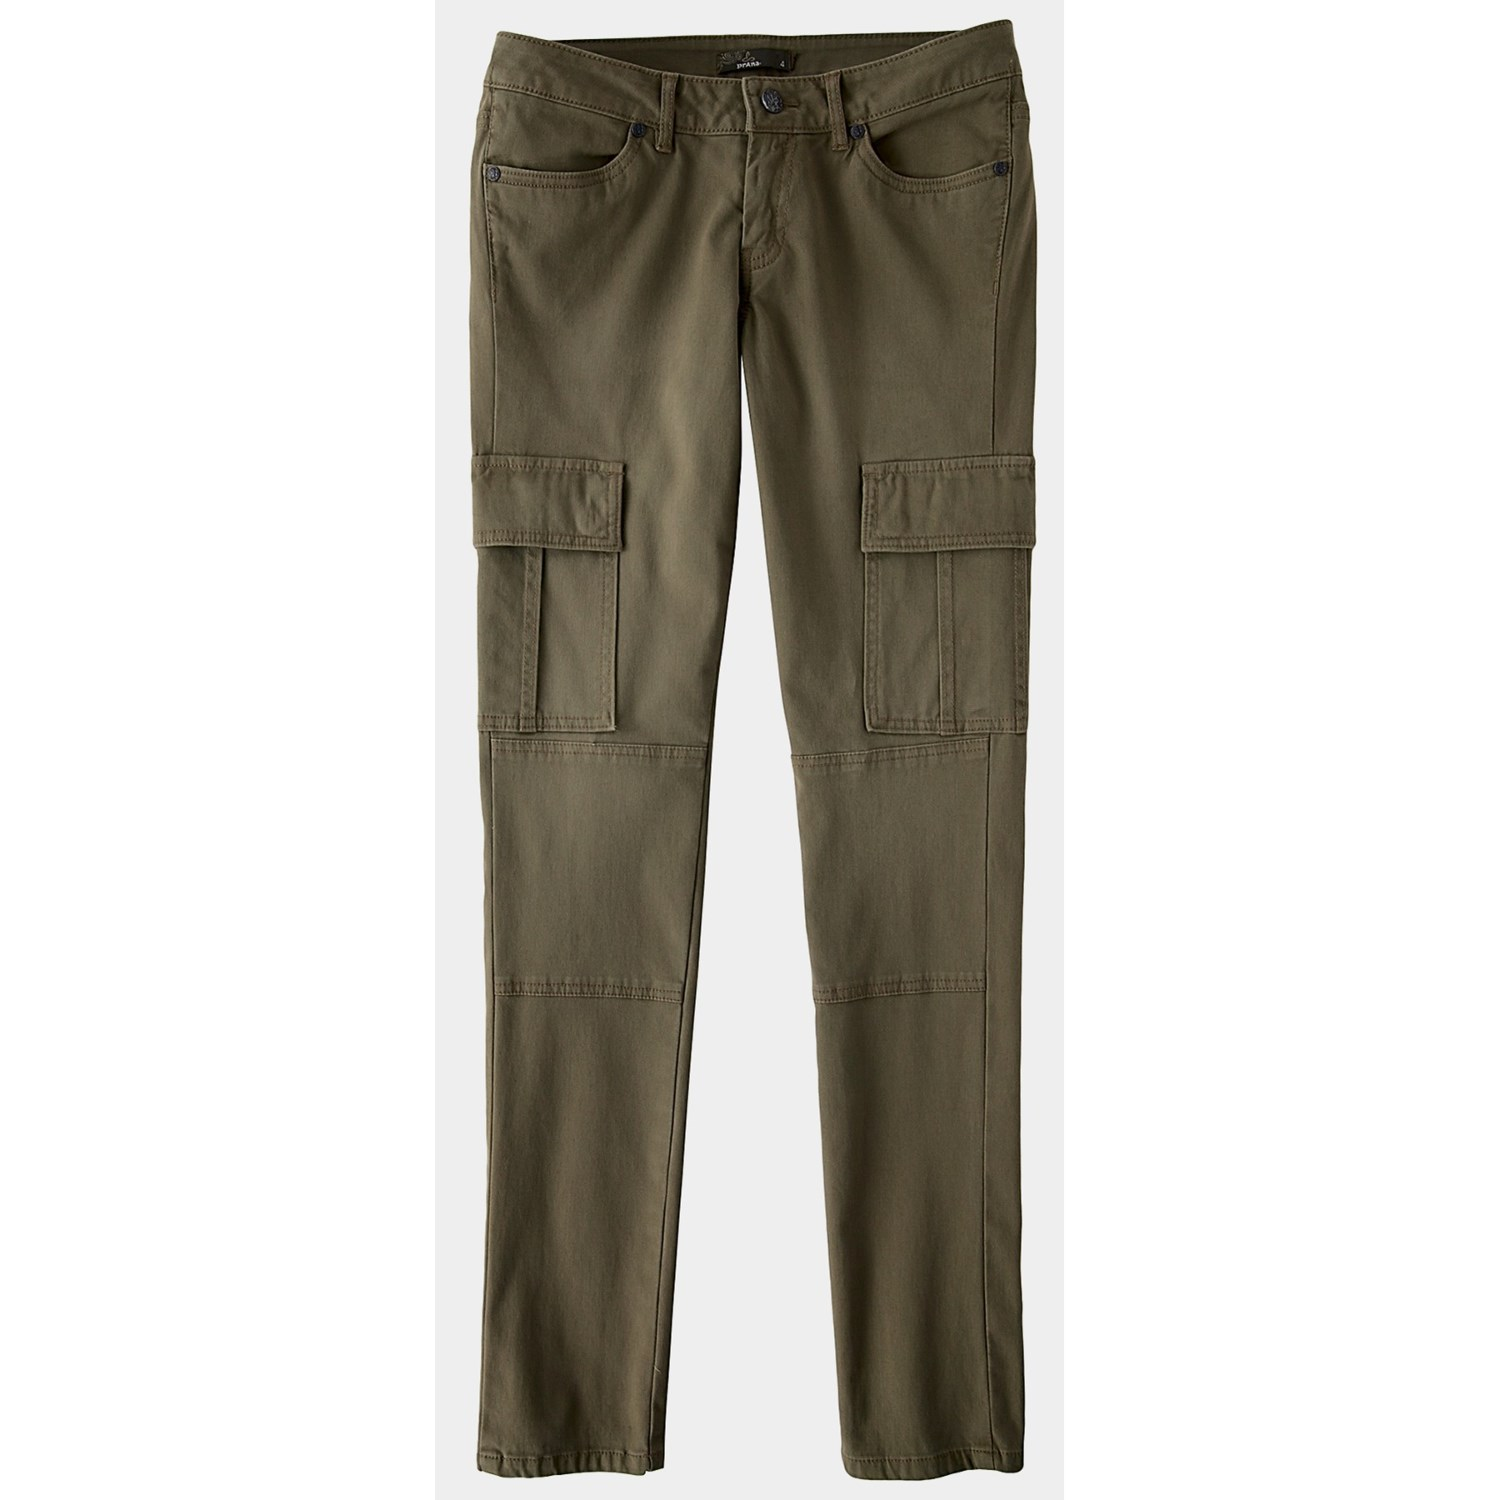 Lastest WOMEN ULTRA STRETCH SKINNY CARGO PANTS  UNIQLO